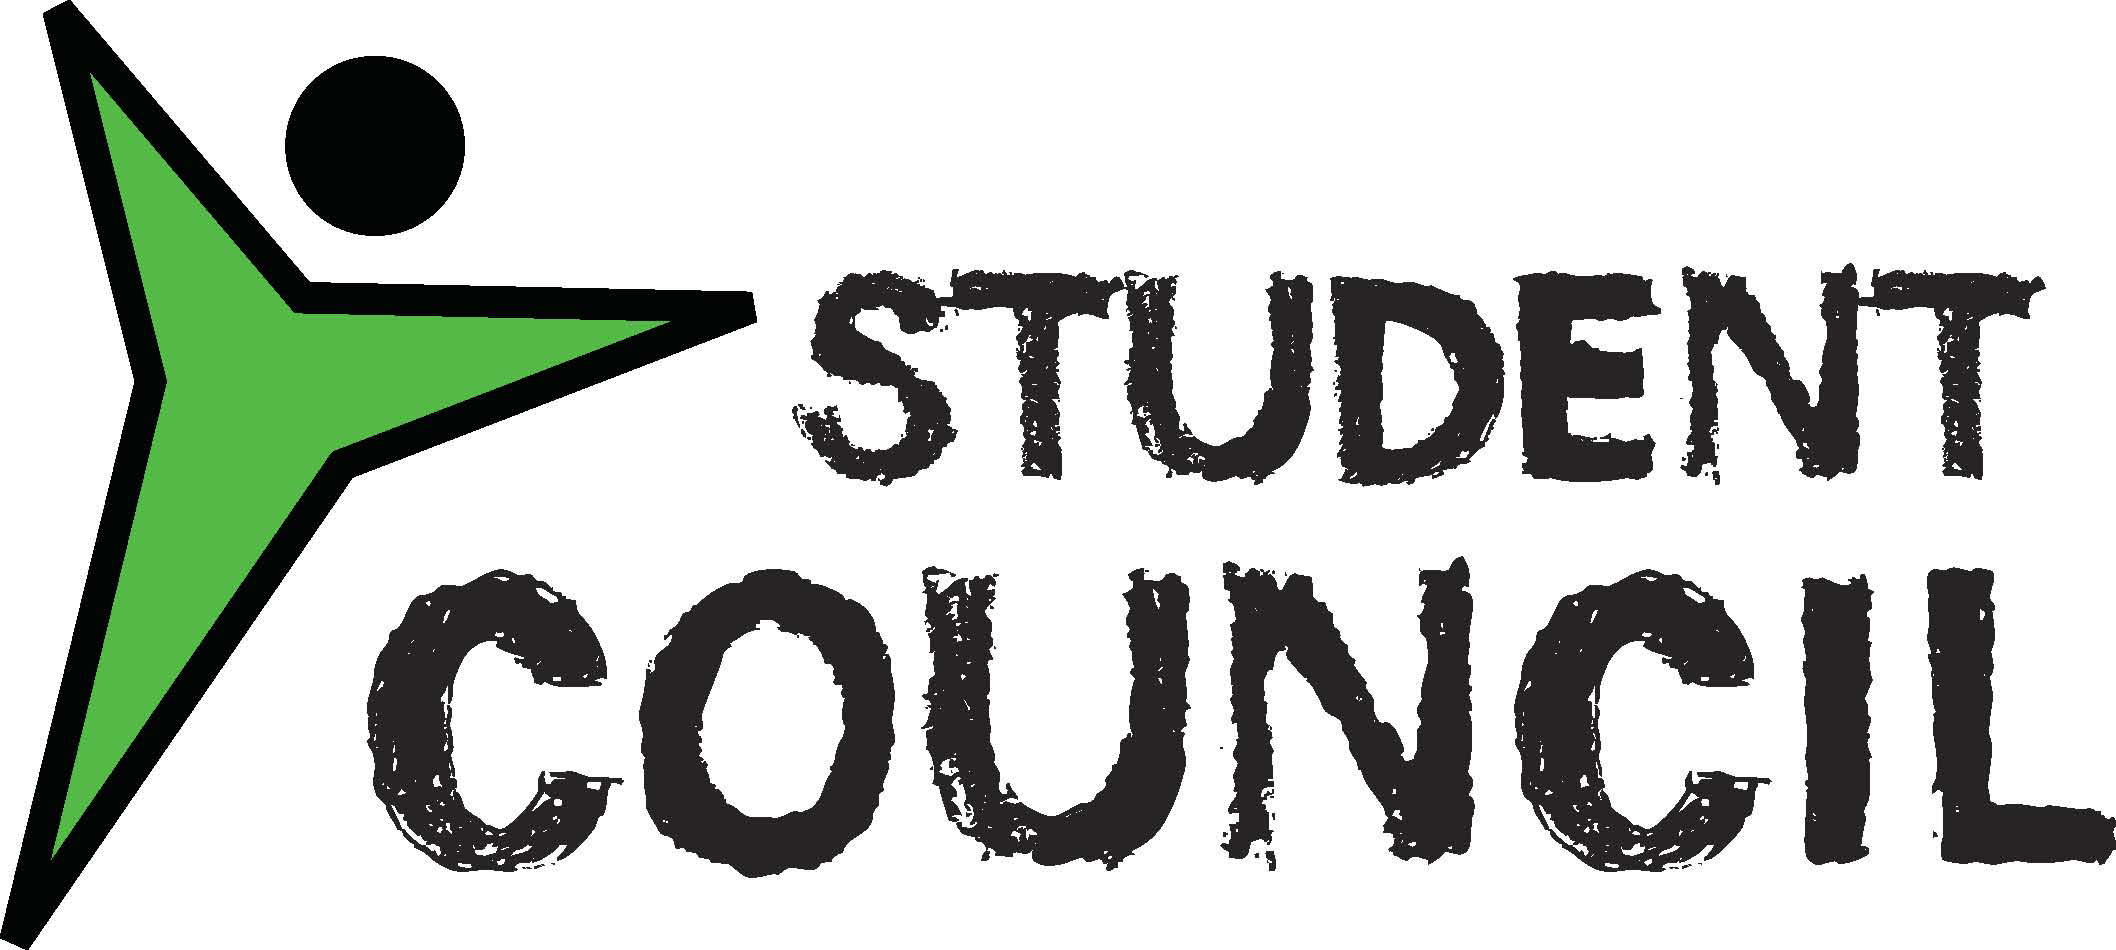 Government clipart student council. Image group dothuytinh